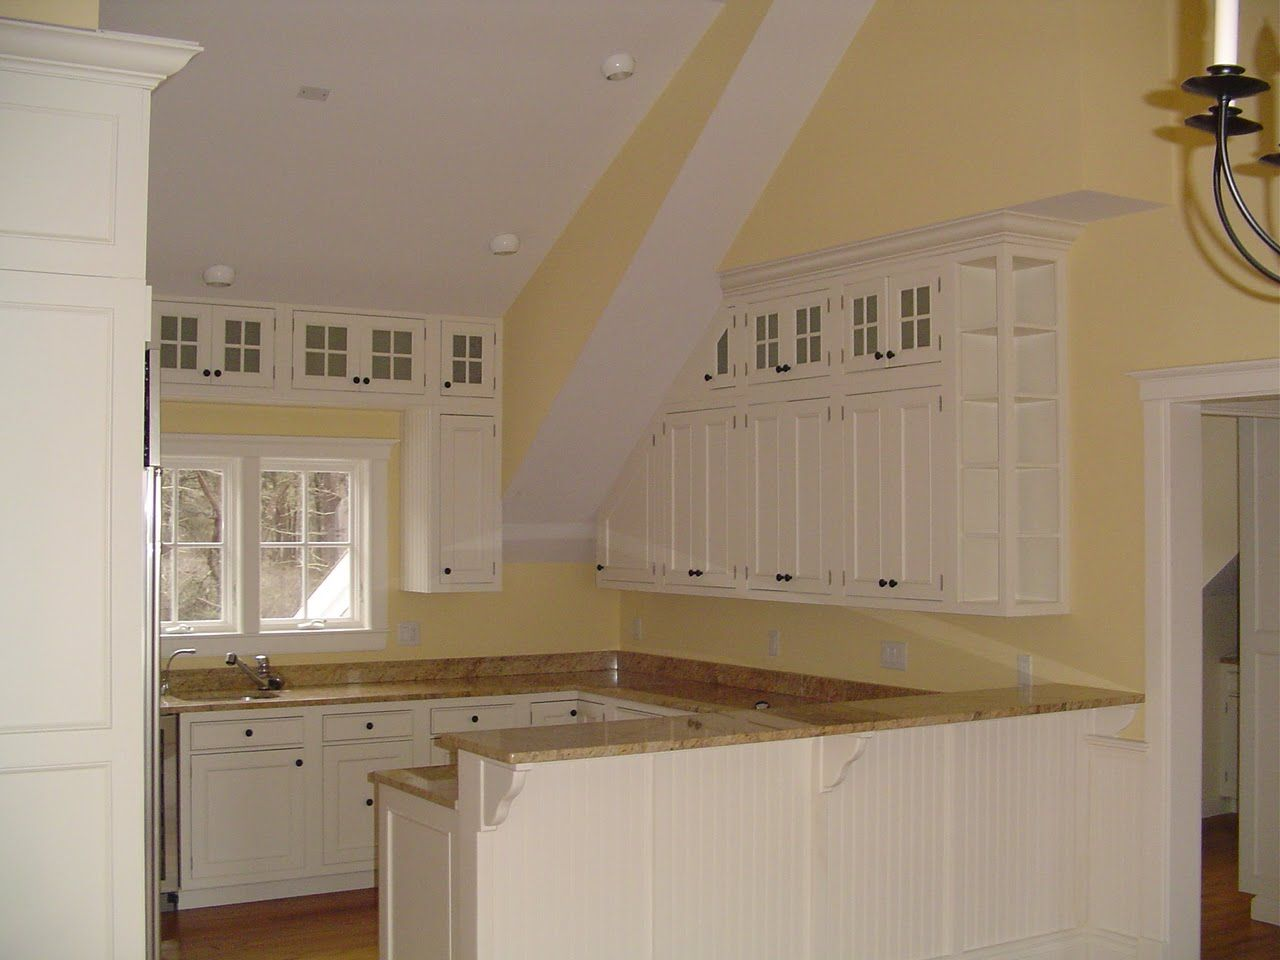 Bright Yellow And White Beloved Interior Paint Color Decoration Concept Of  Attic Kitchen Design With Contemporary